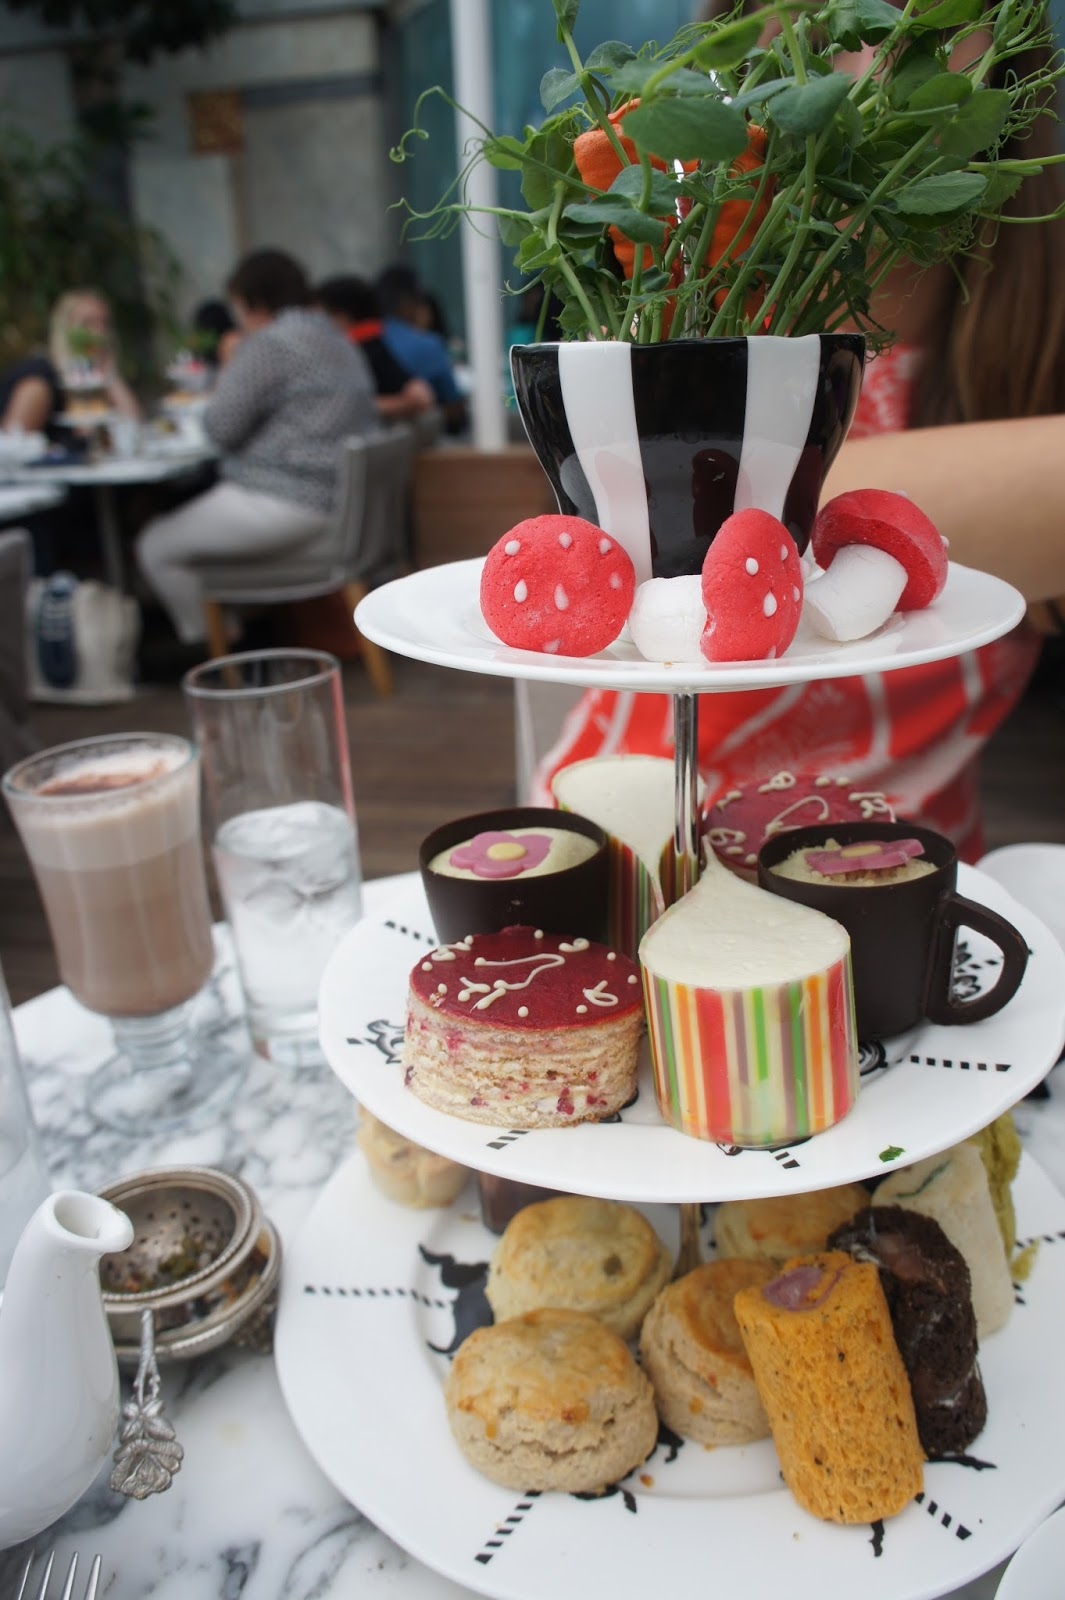 Mad hatters vegan afternoon tea